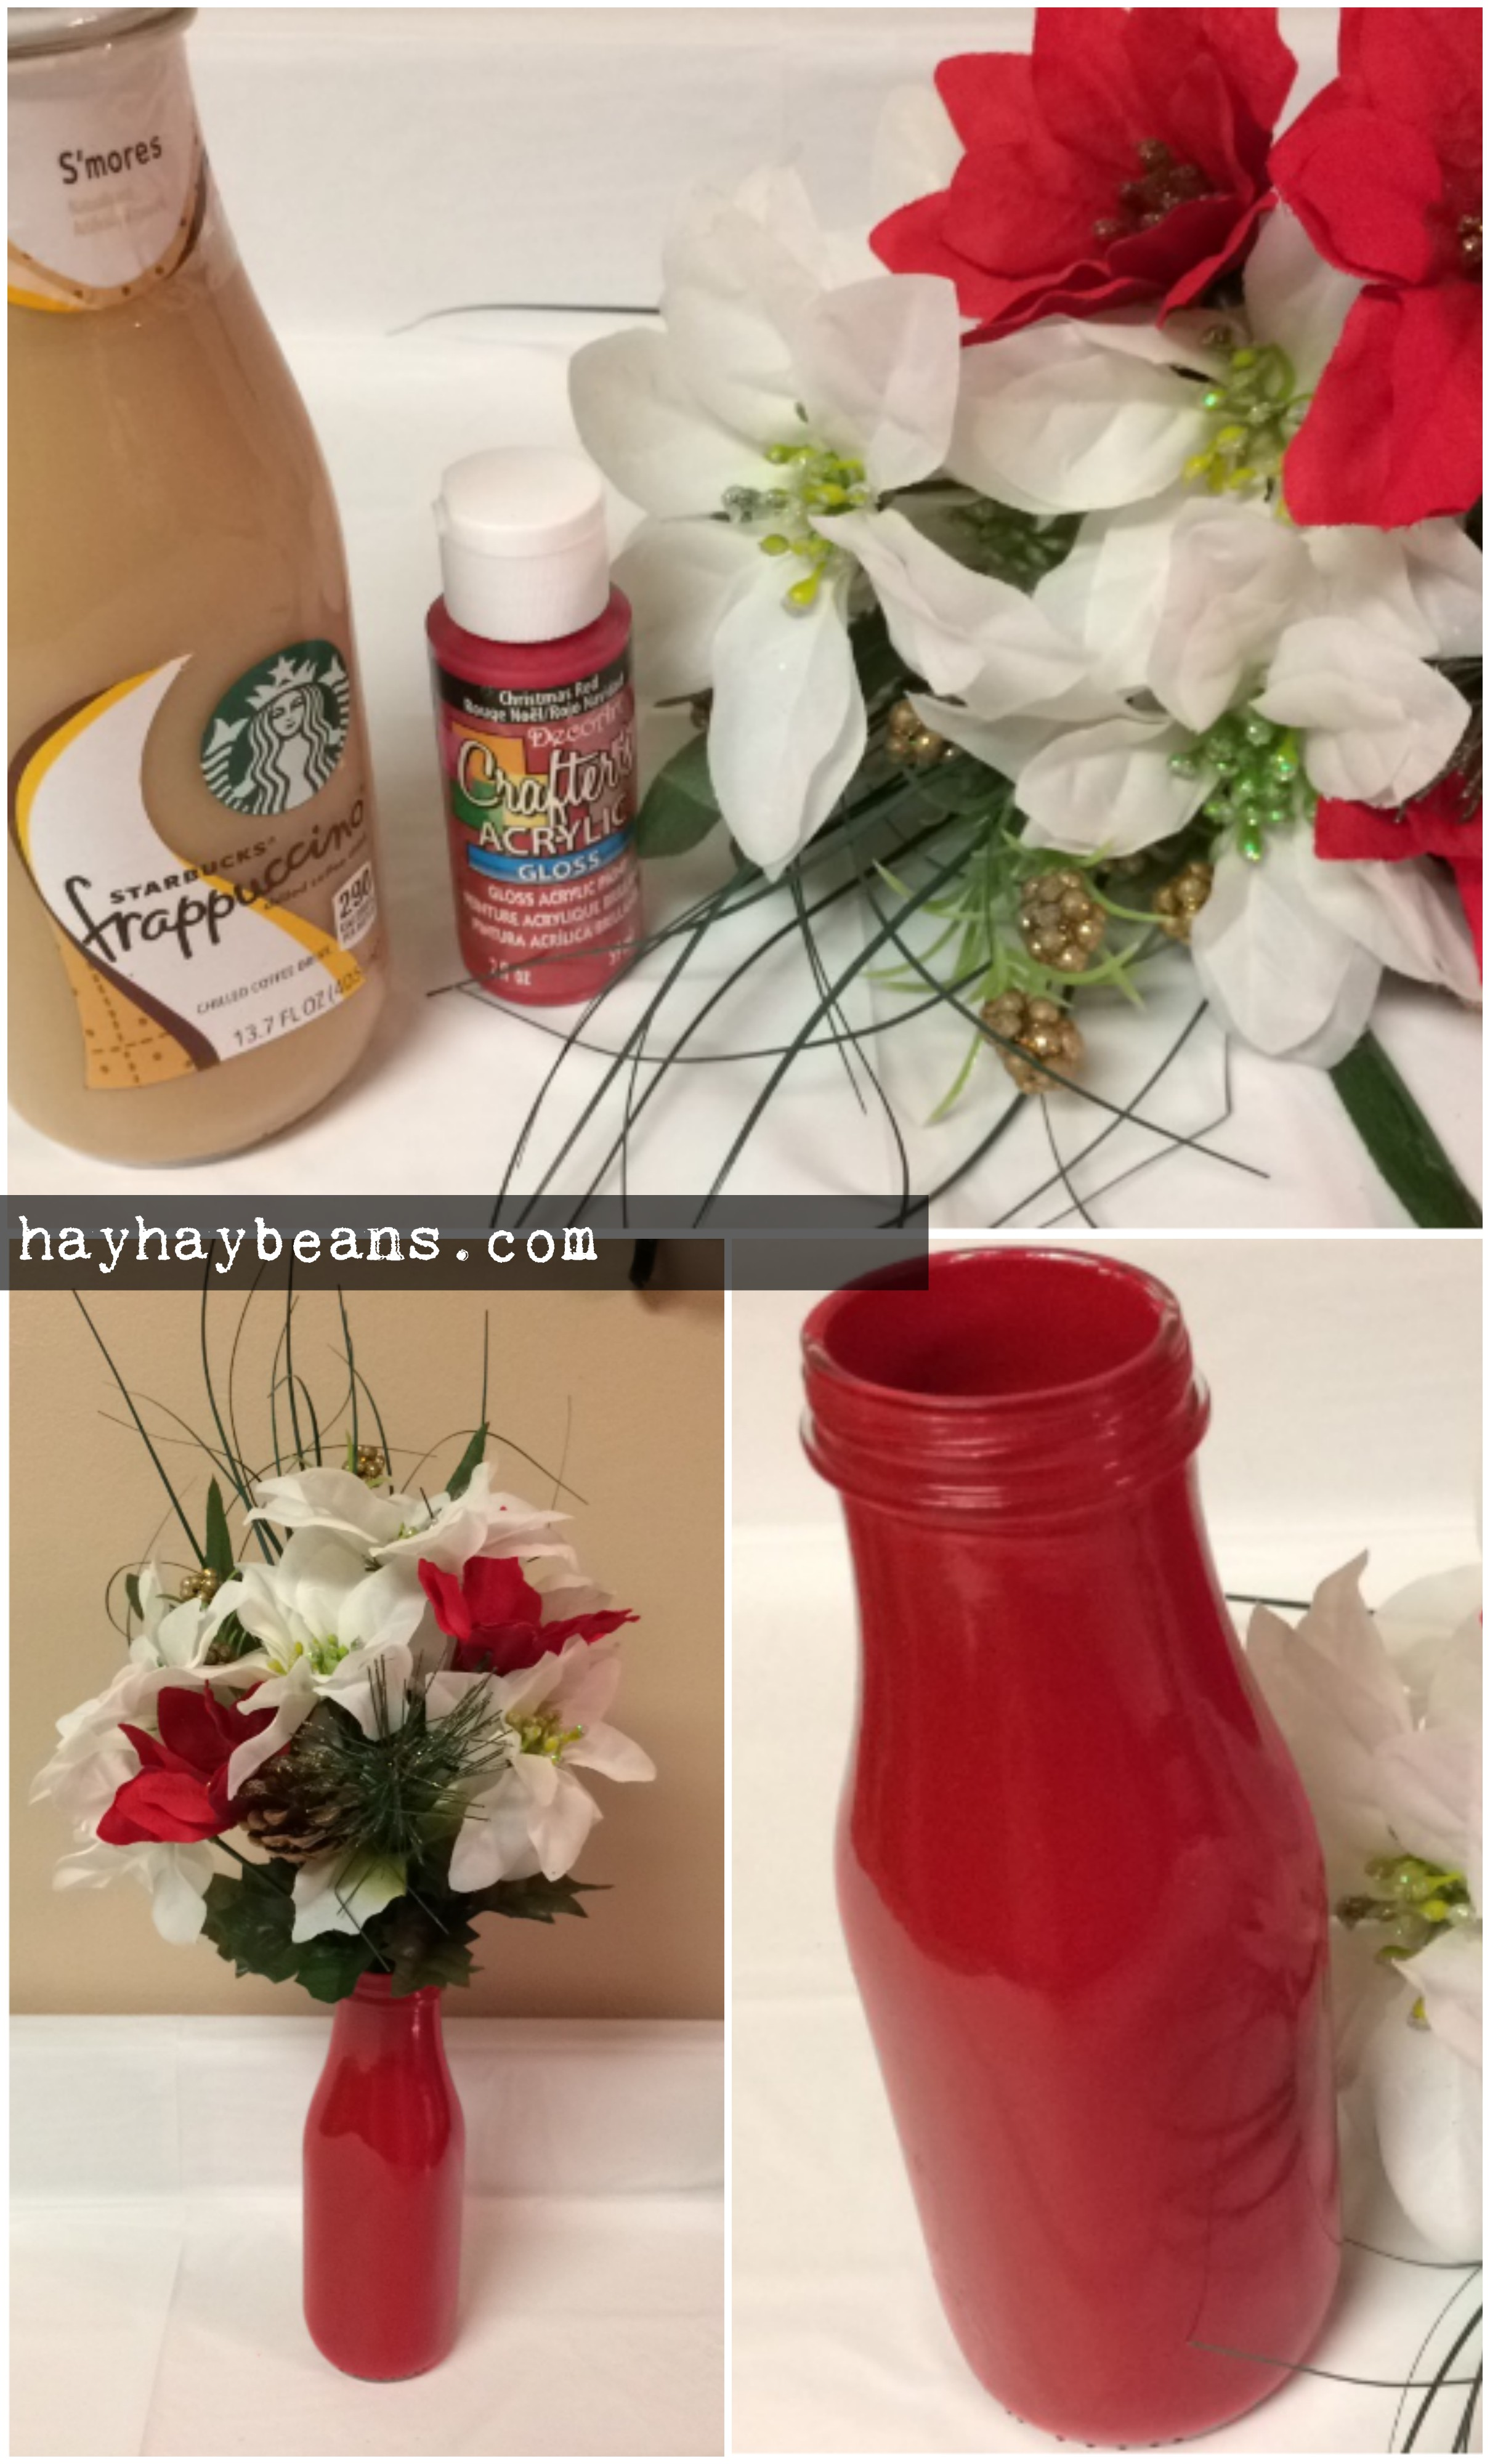 Diy cheap flower vase decor using starbucks glass bottle starbucks vase diy christmas vase craft decor flowers dollar tree reviewsmspy